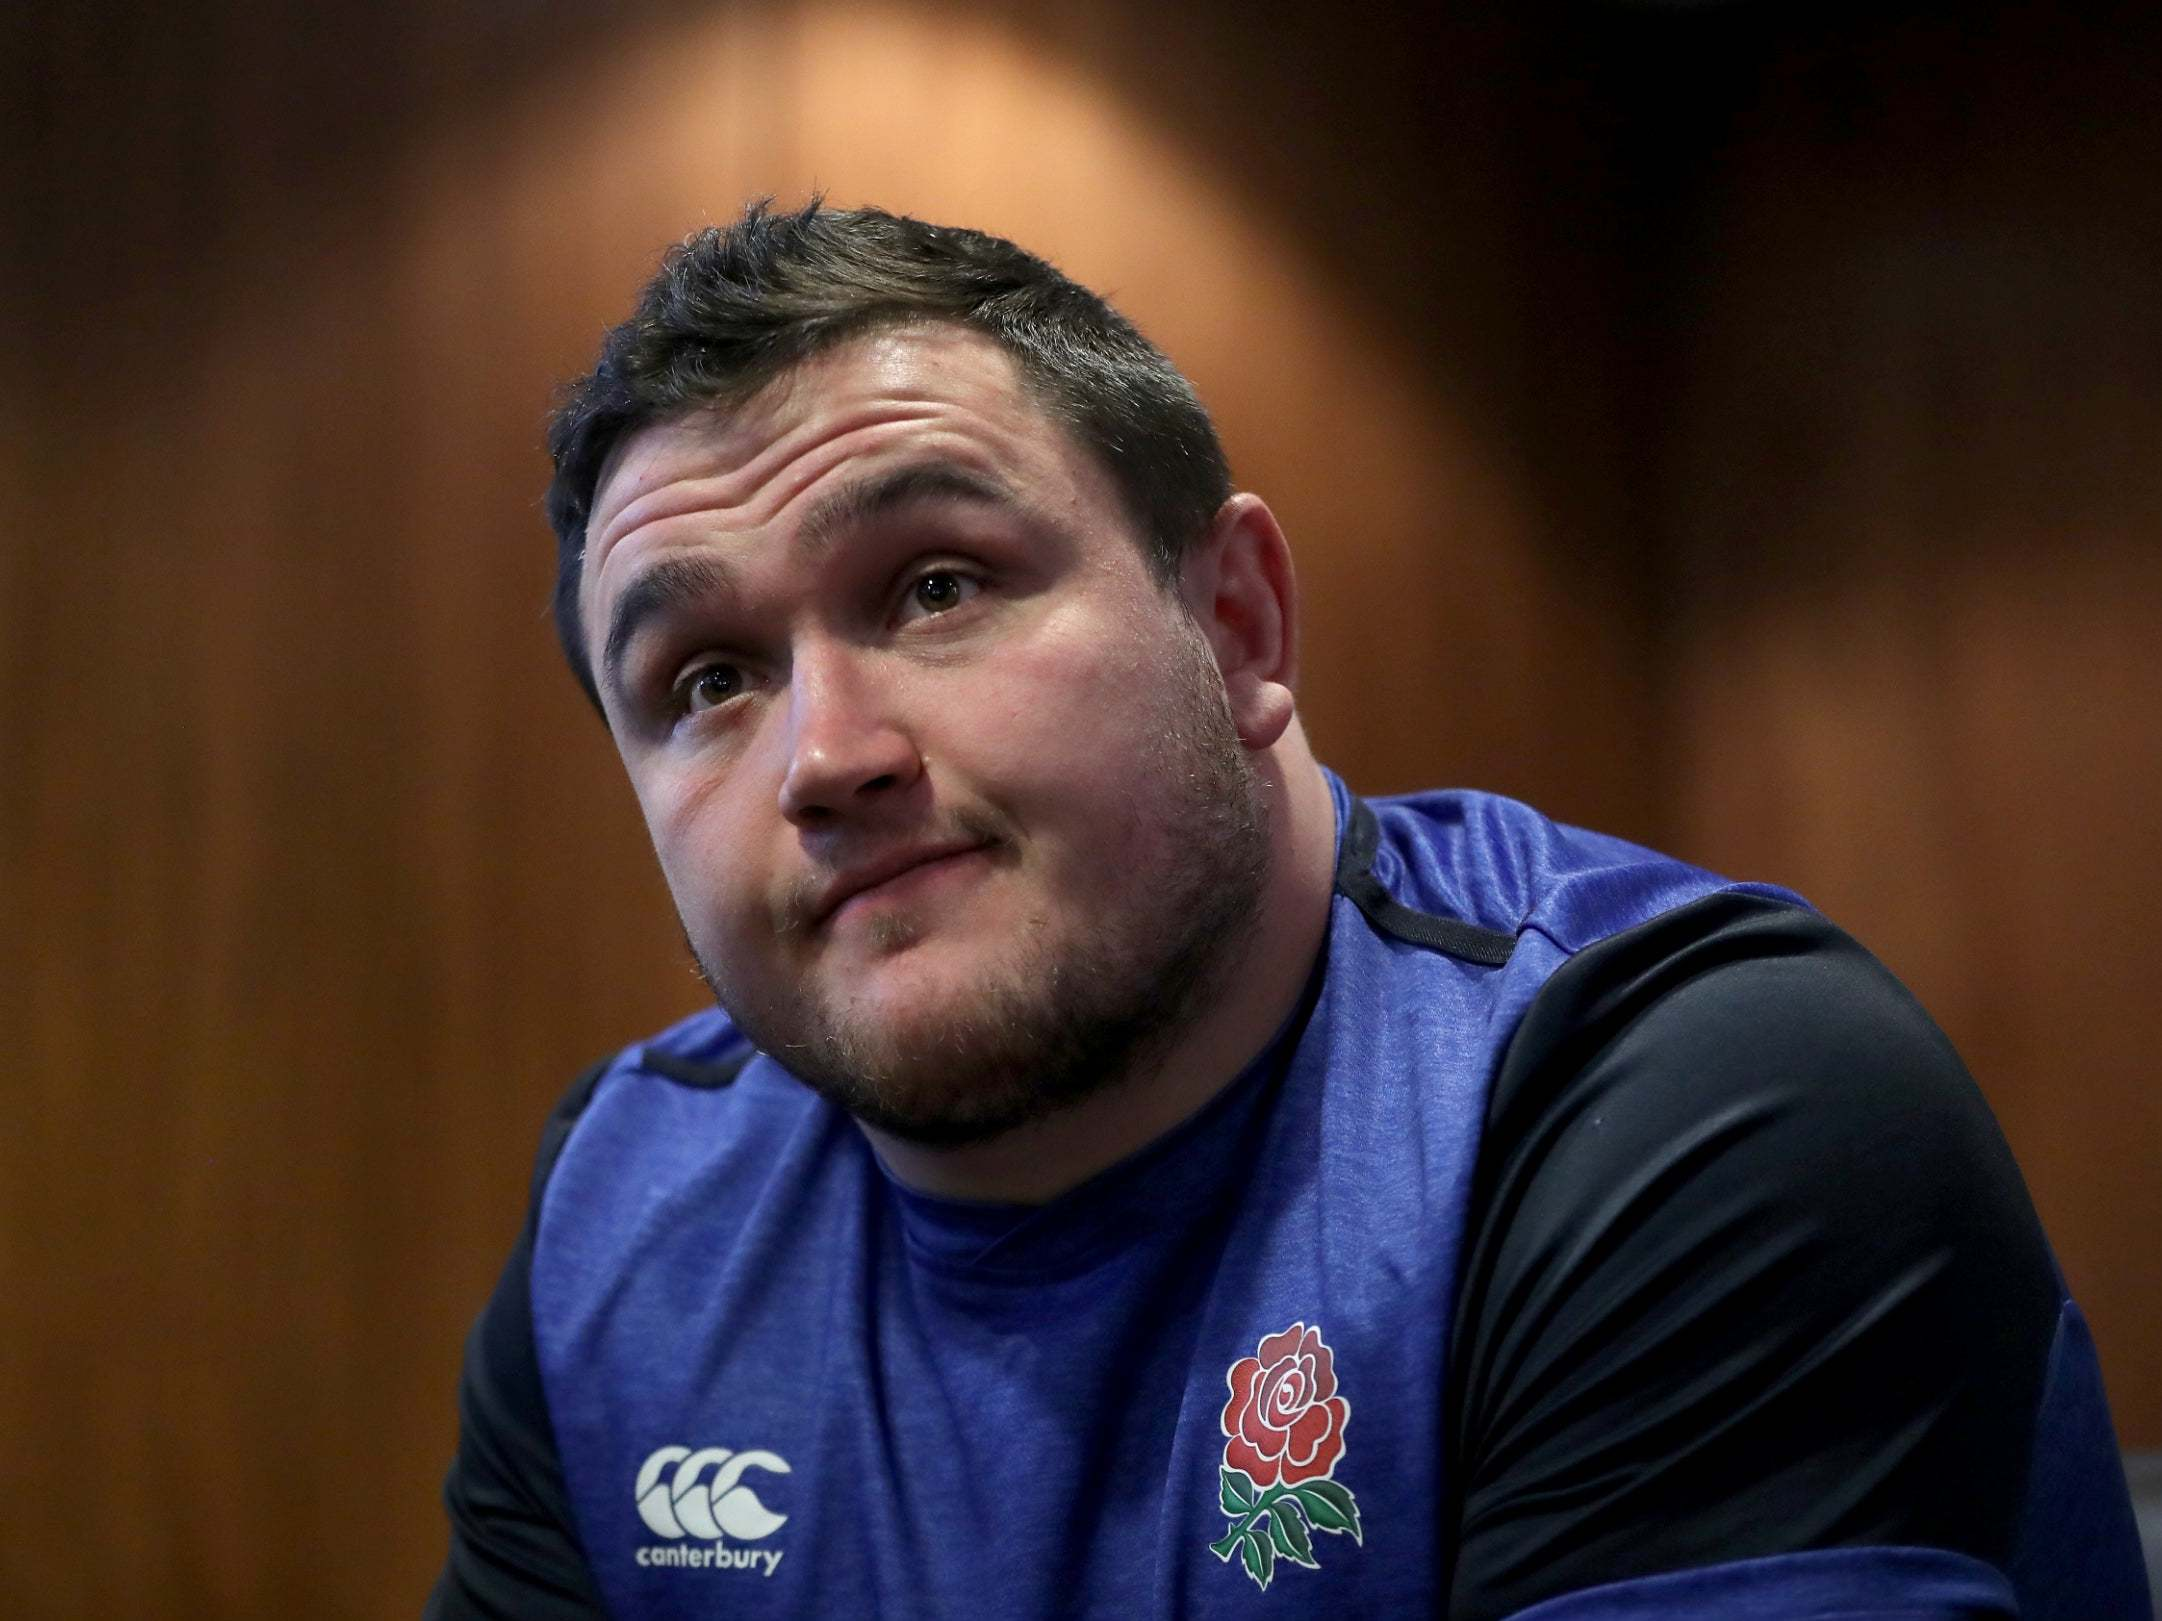 Jamie George to stay with Saracens as England star opens up on salary cap scandal